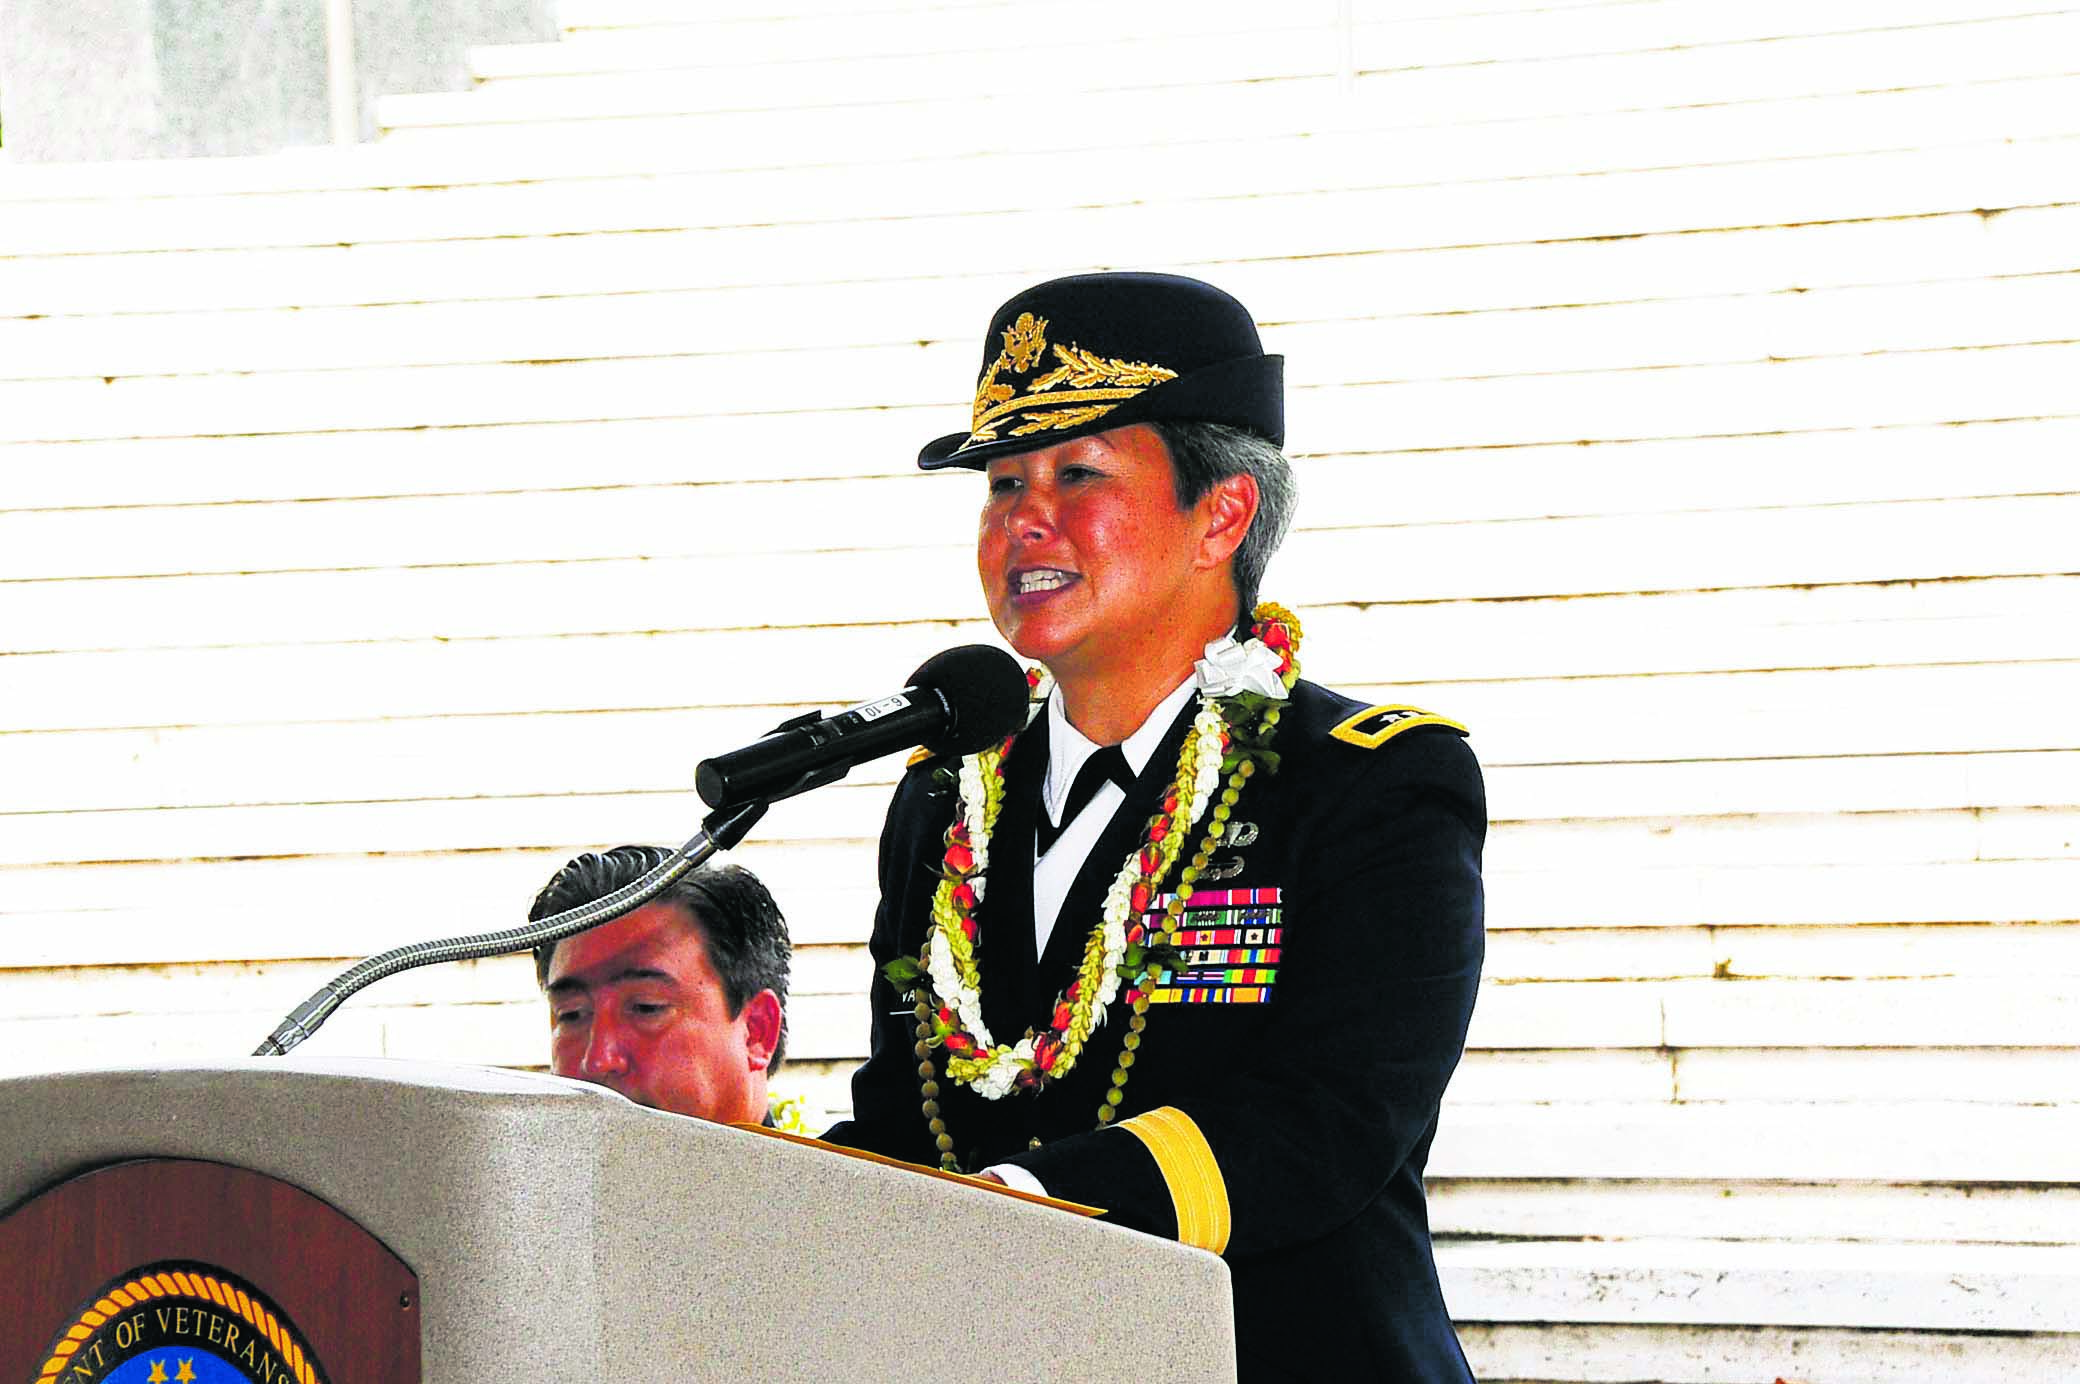 Maj. Gen. Vares-Lum, mobilization assistant to the commander of the U.S. Indo-Pacific Command, delivered the memorial address at the National Memorial Cemetery of the Pacific at Punchbowl on Sept. 28. The text of her speech will be published in a future edition of The Hawai'i Herald.